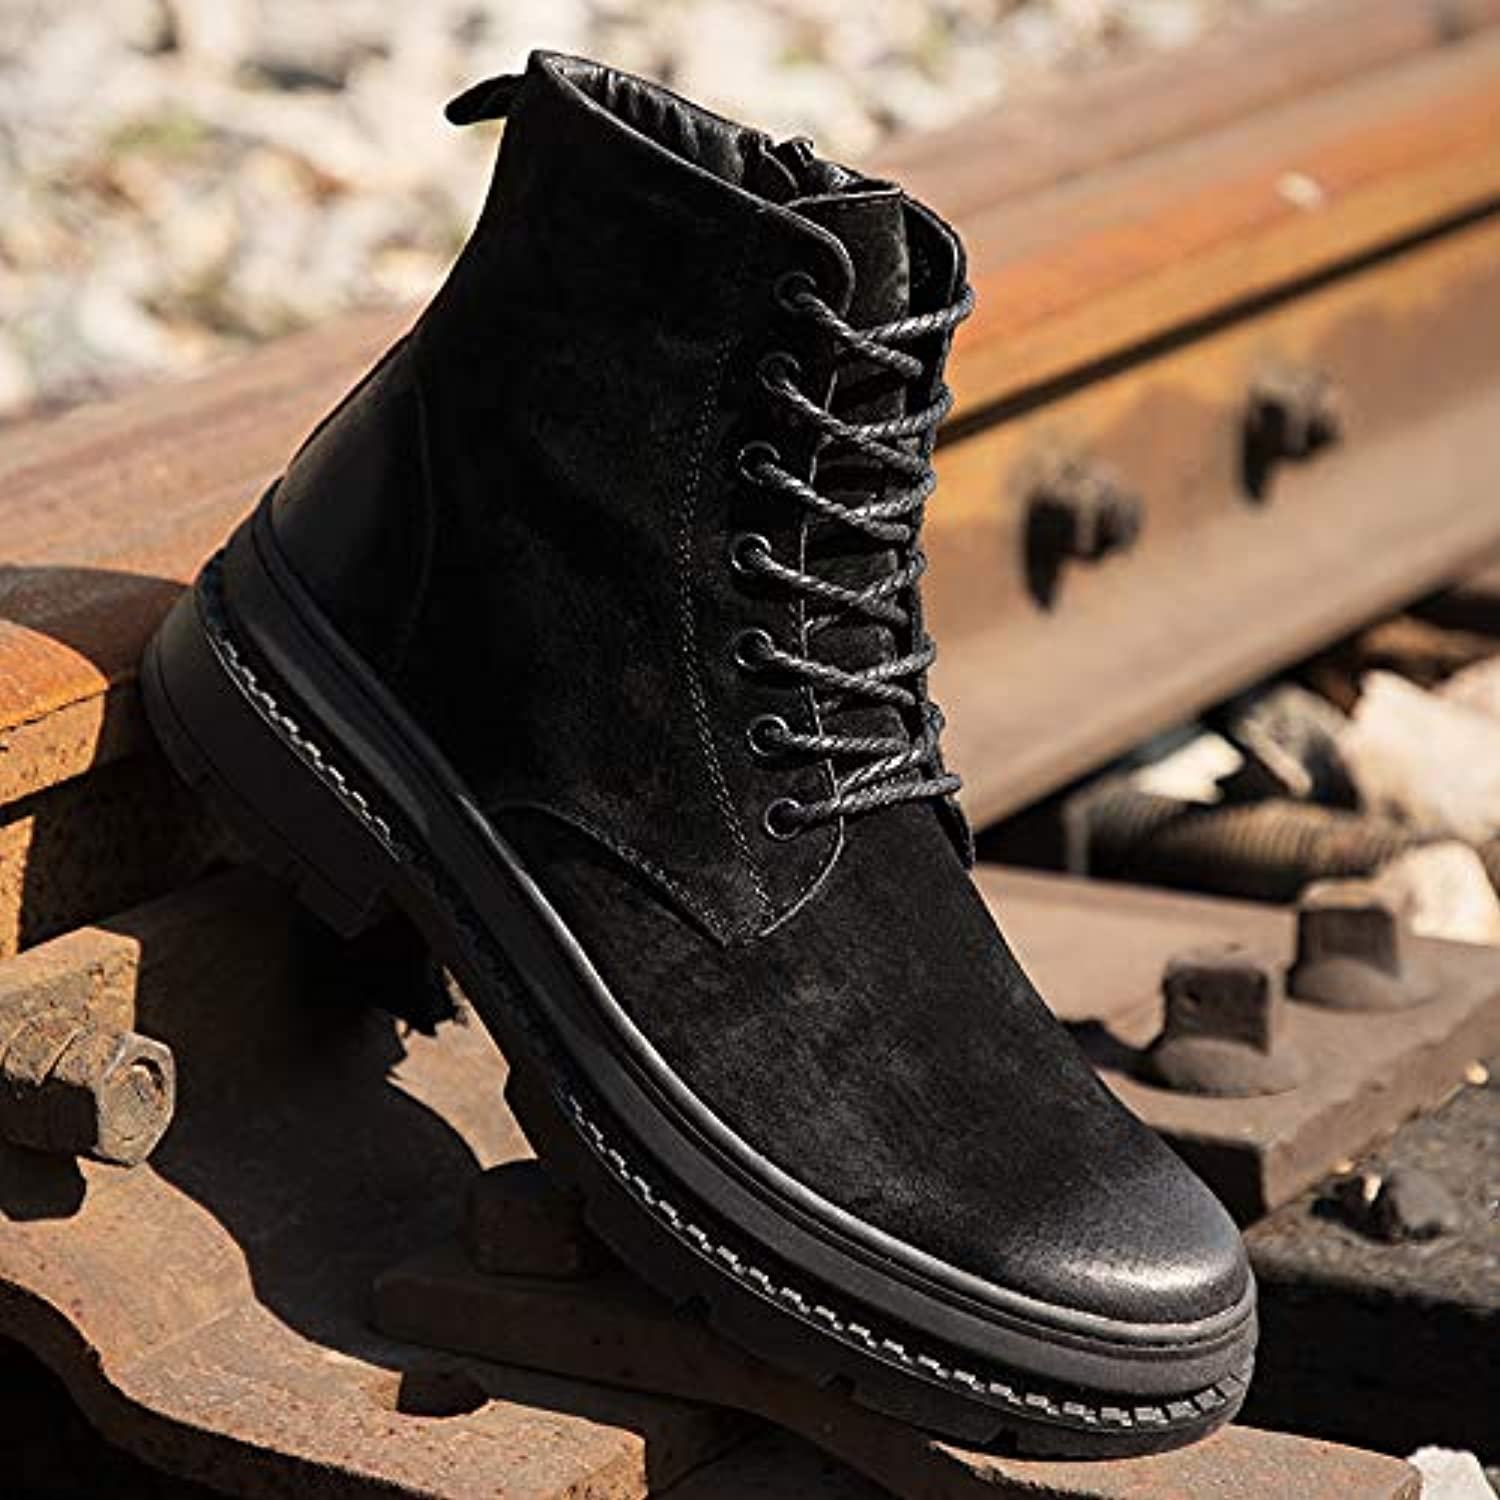 ZyuQ Ankle boots Mid-Autumn Martin Boots Men'S Fashion High-Top Snow Boots